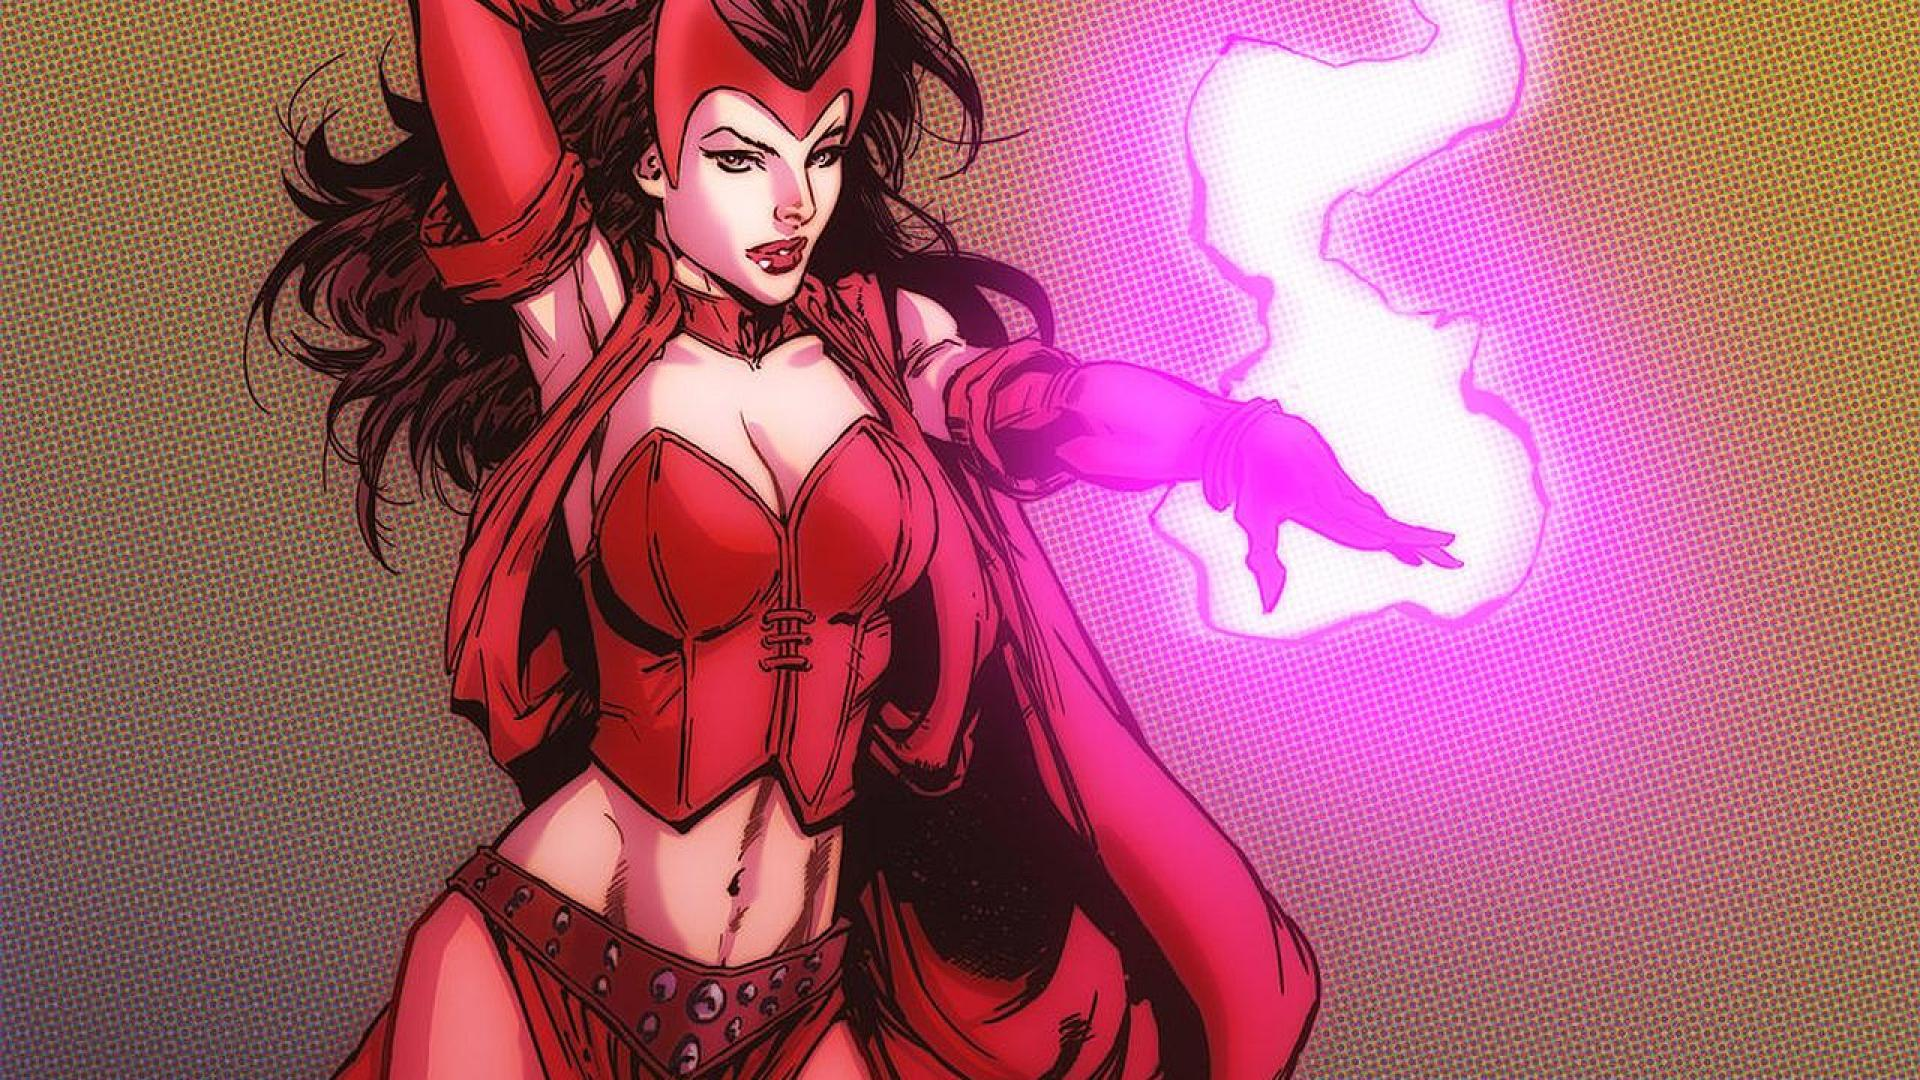 Scarlet witch   100283   High Quality and Resolution Wallpapers on 1920x1080